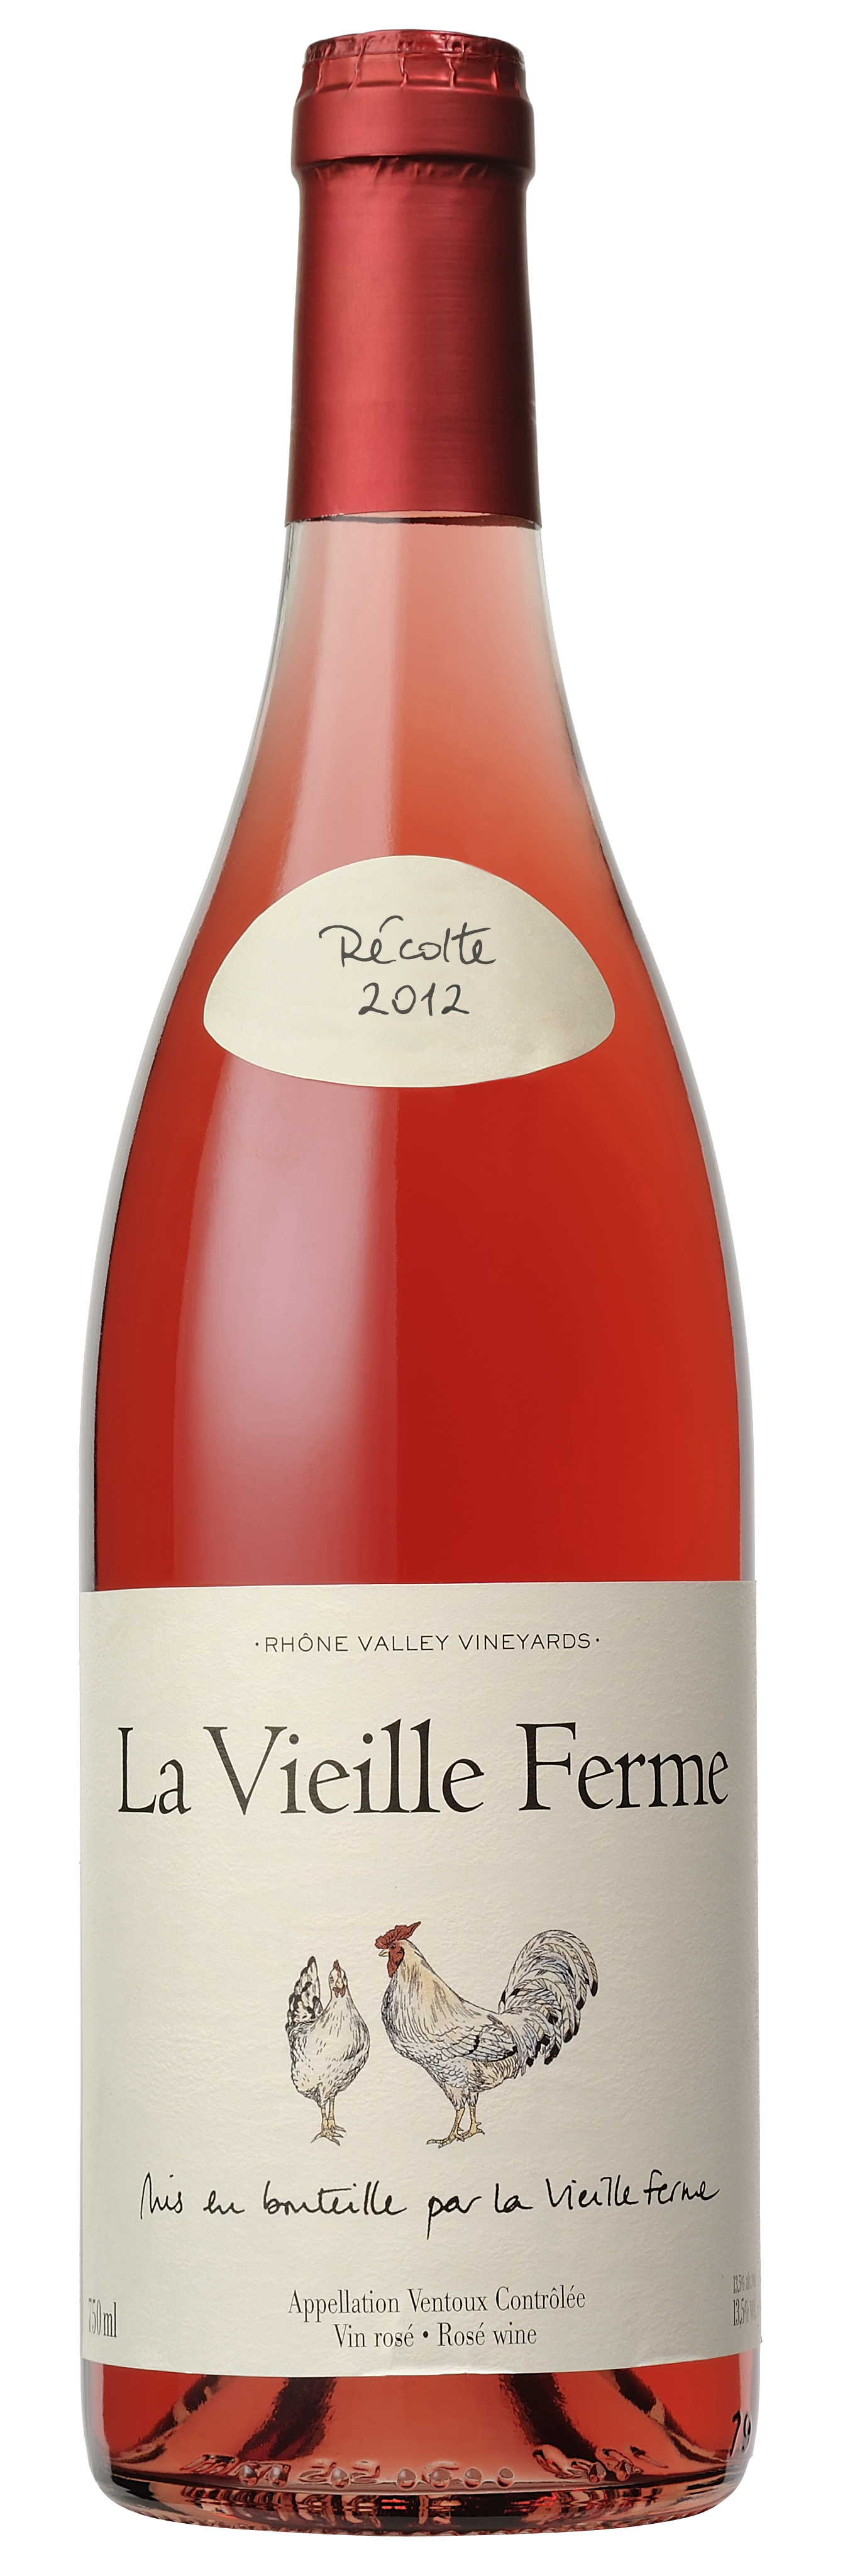 La Vieille Ferme Rose 2012 This Ultra Ripe Grenache Based Rhone Blend Delivers Masses Of Jui Conditionnement De Vin Vieilles Fermes Cote De Boeuf Barbecue